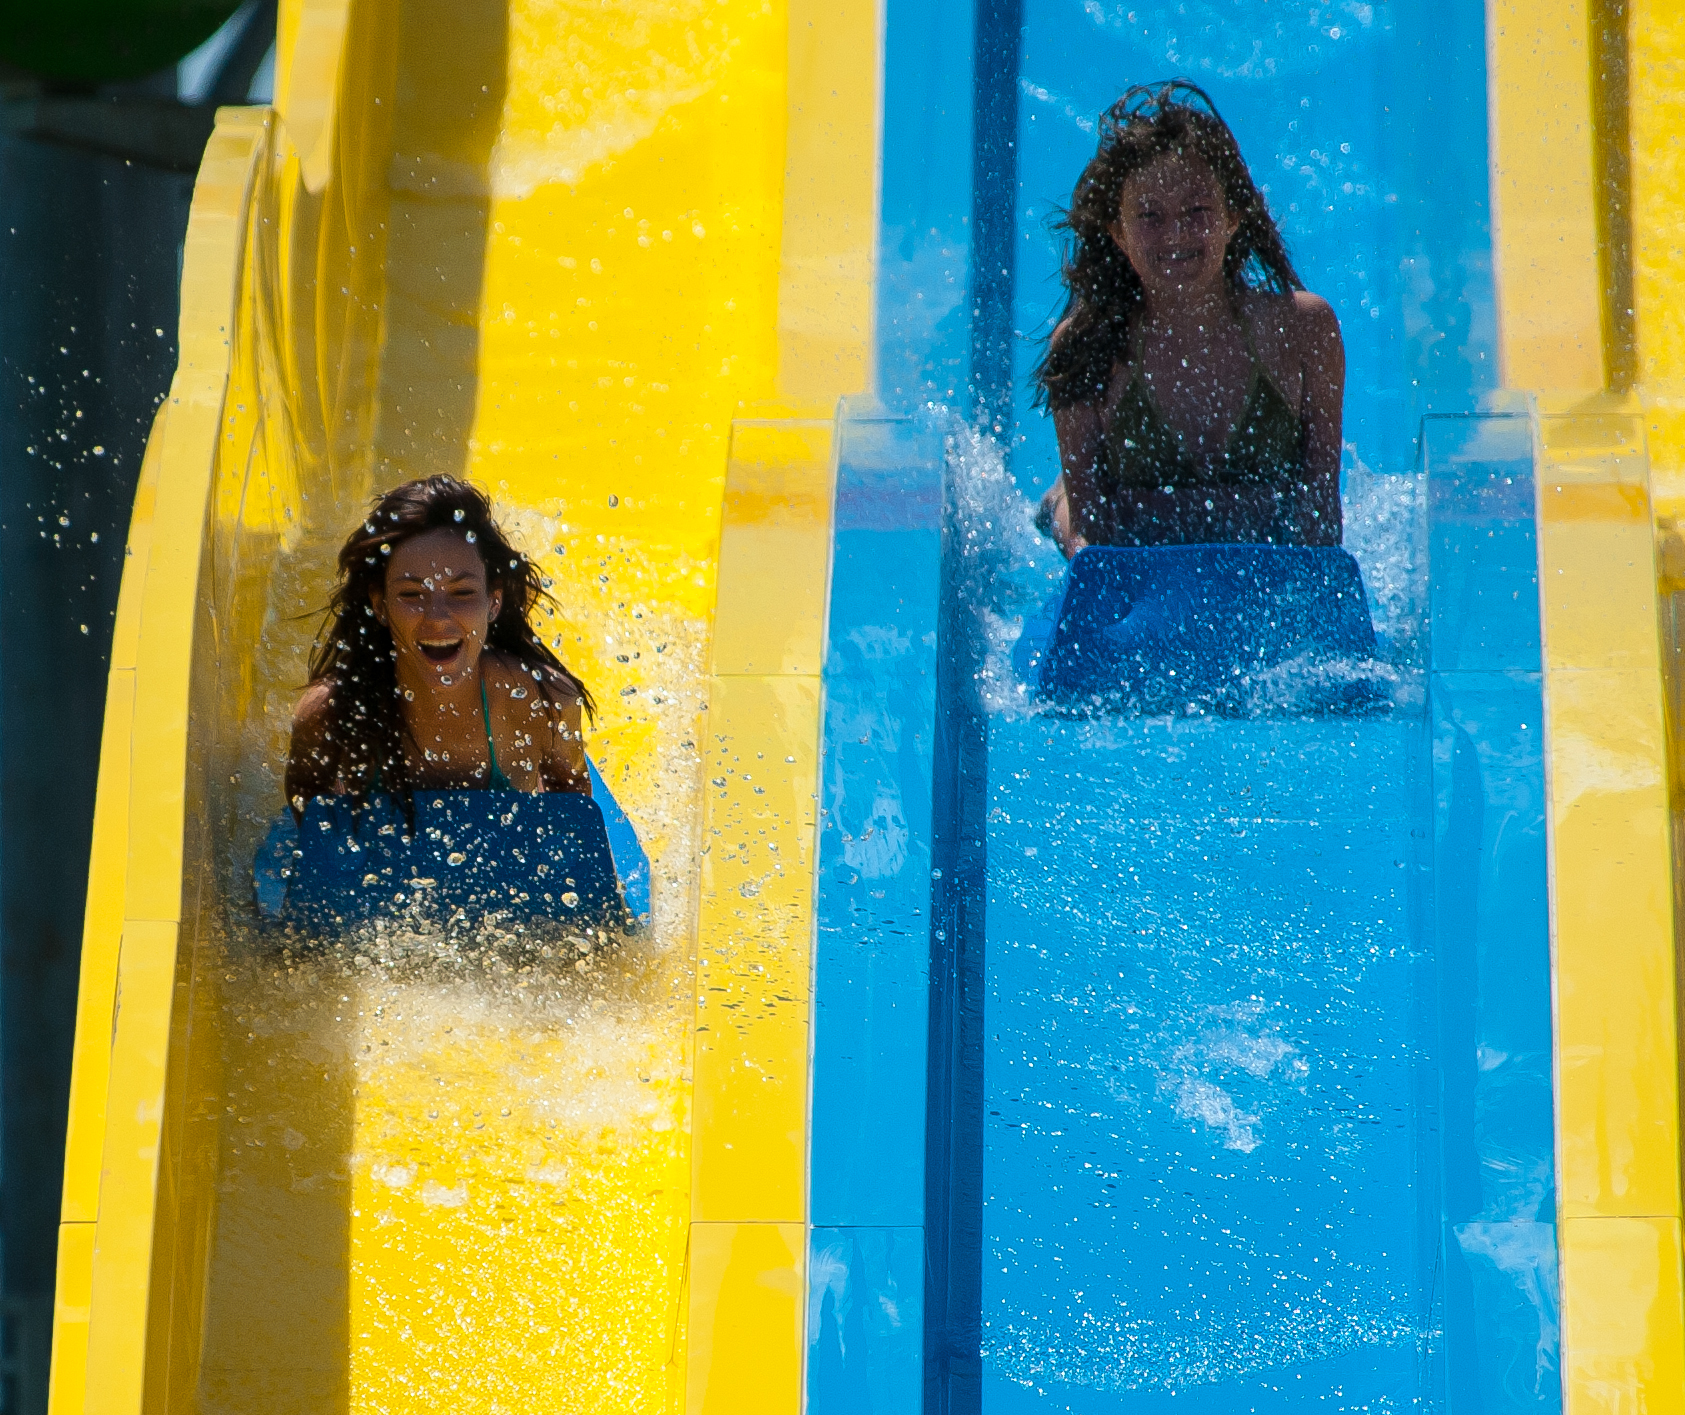 5may19_alligator water park-9.jpg